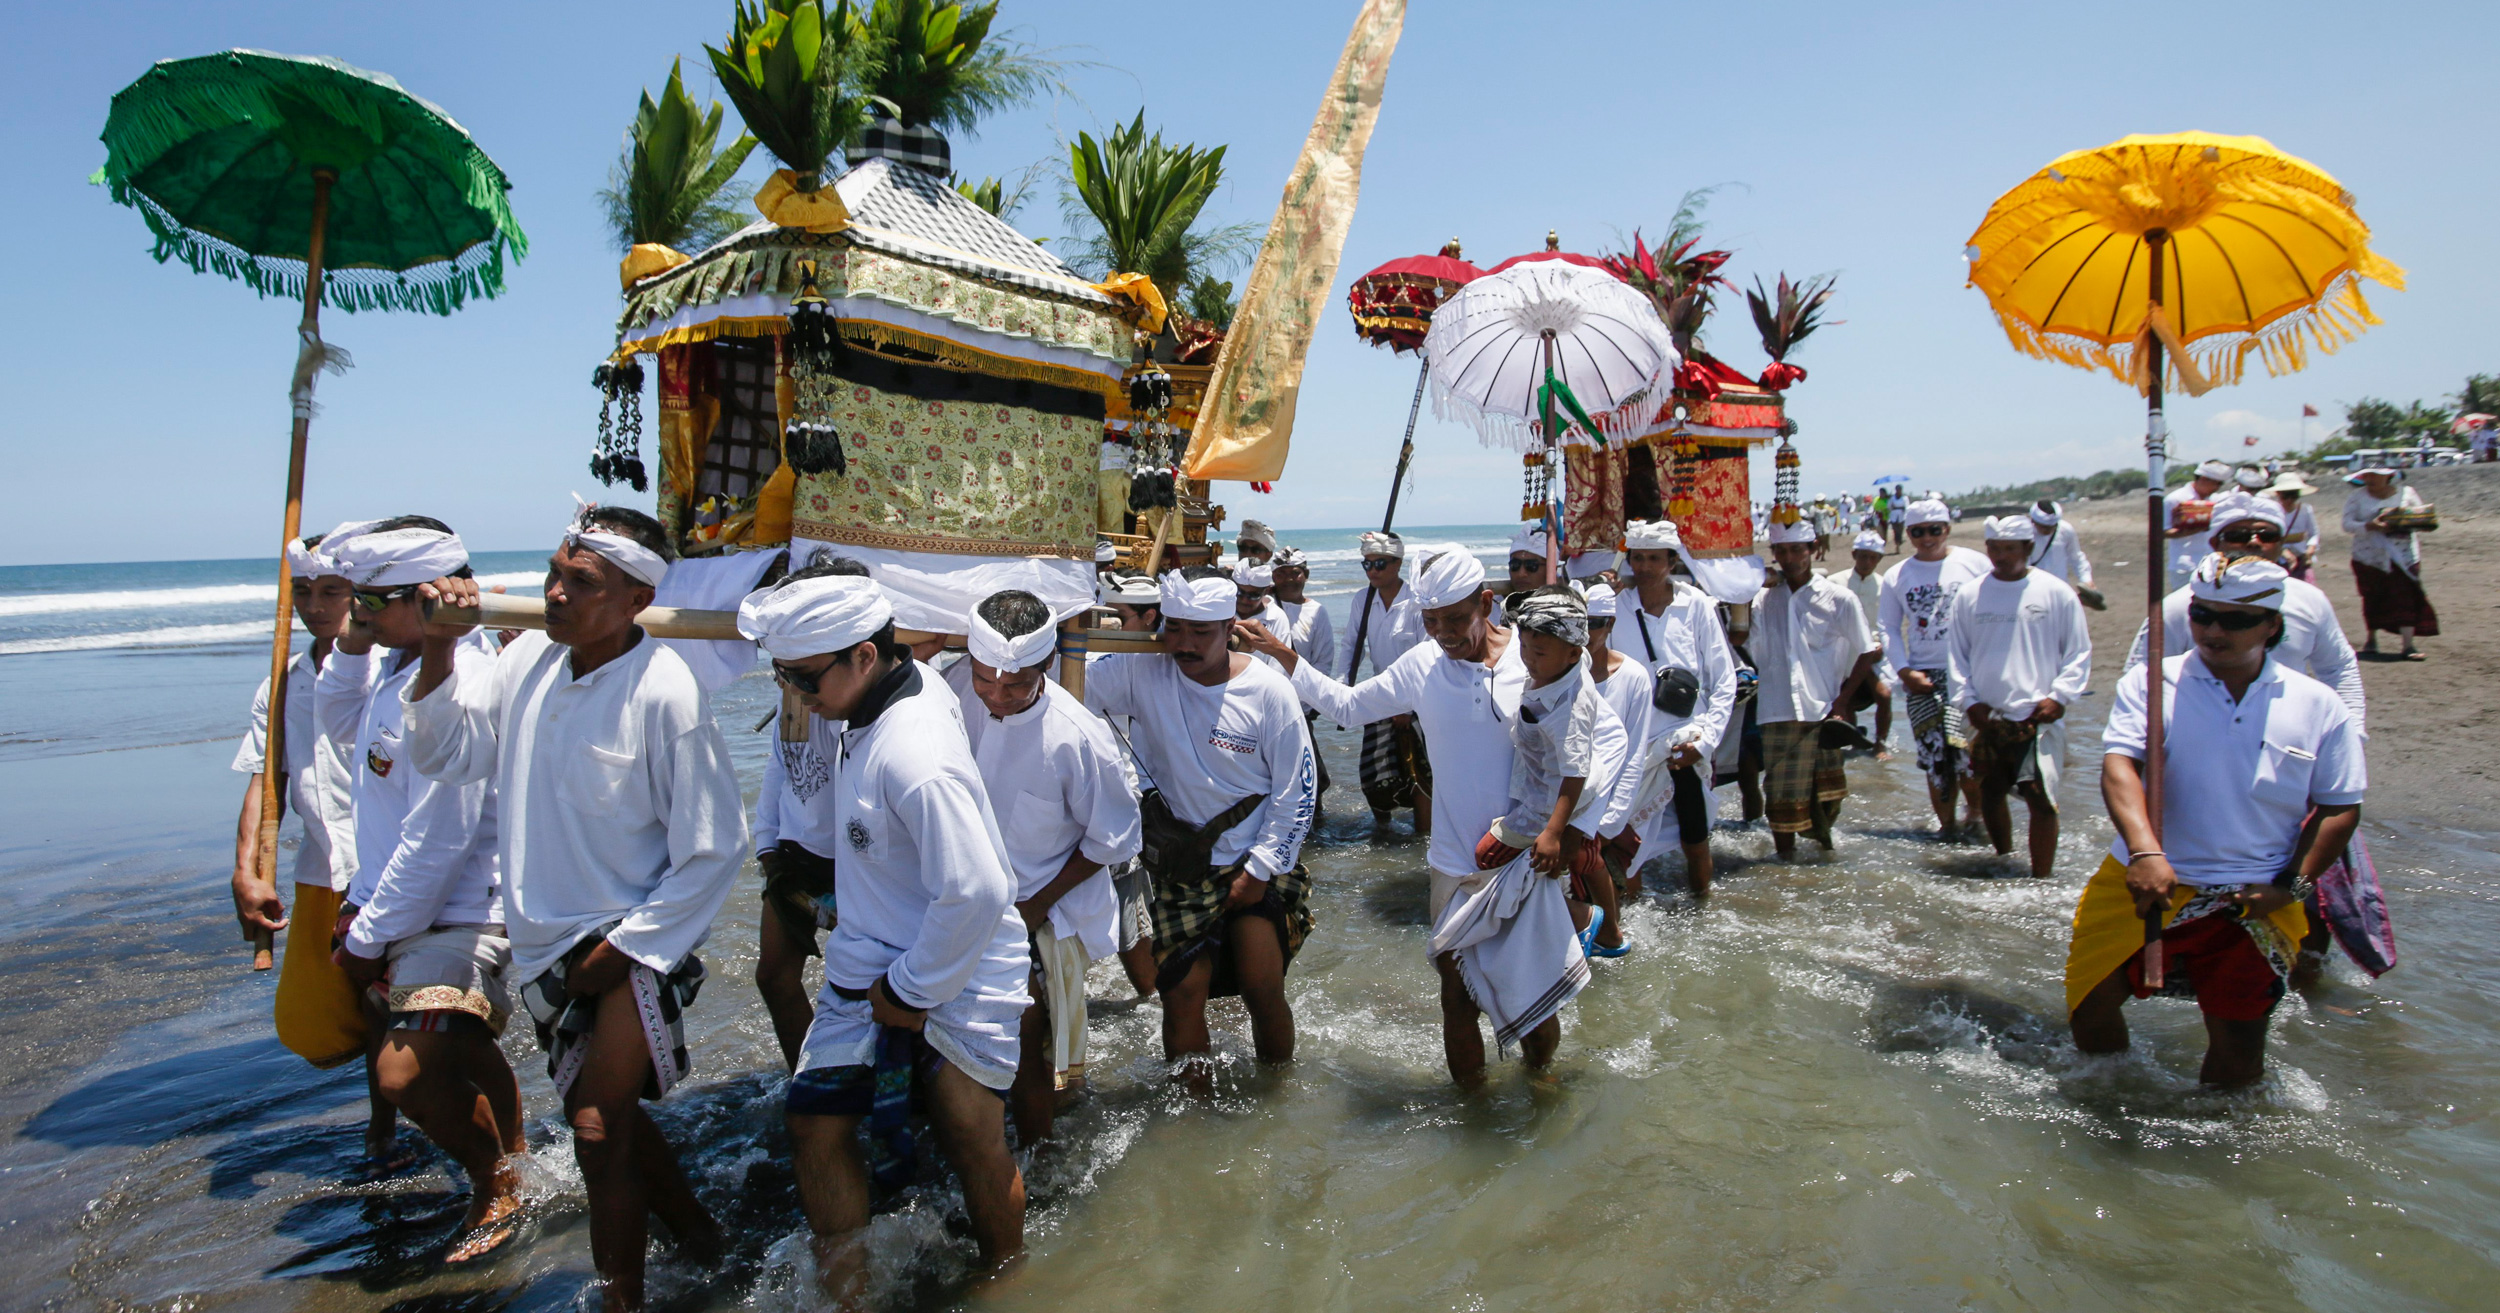 Melasti, a purifying ritual practiced by Balinese Hindus, is one of many ceremonies that rely on the power of the sacred sea. Photo by Made Nagi/epa/Corbis